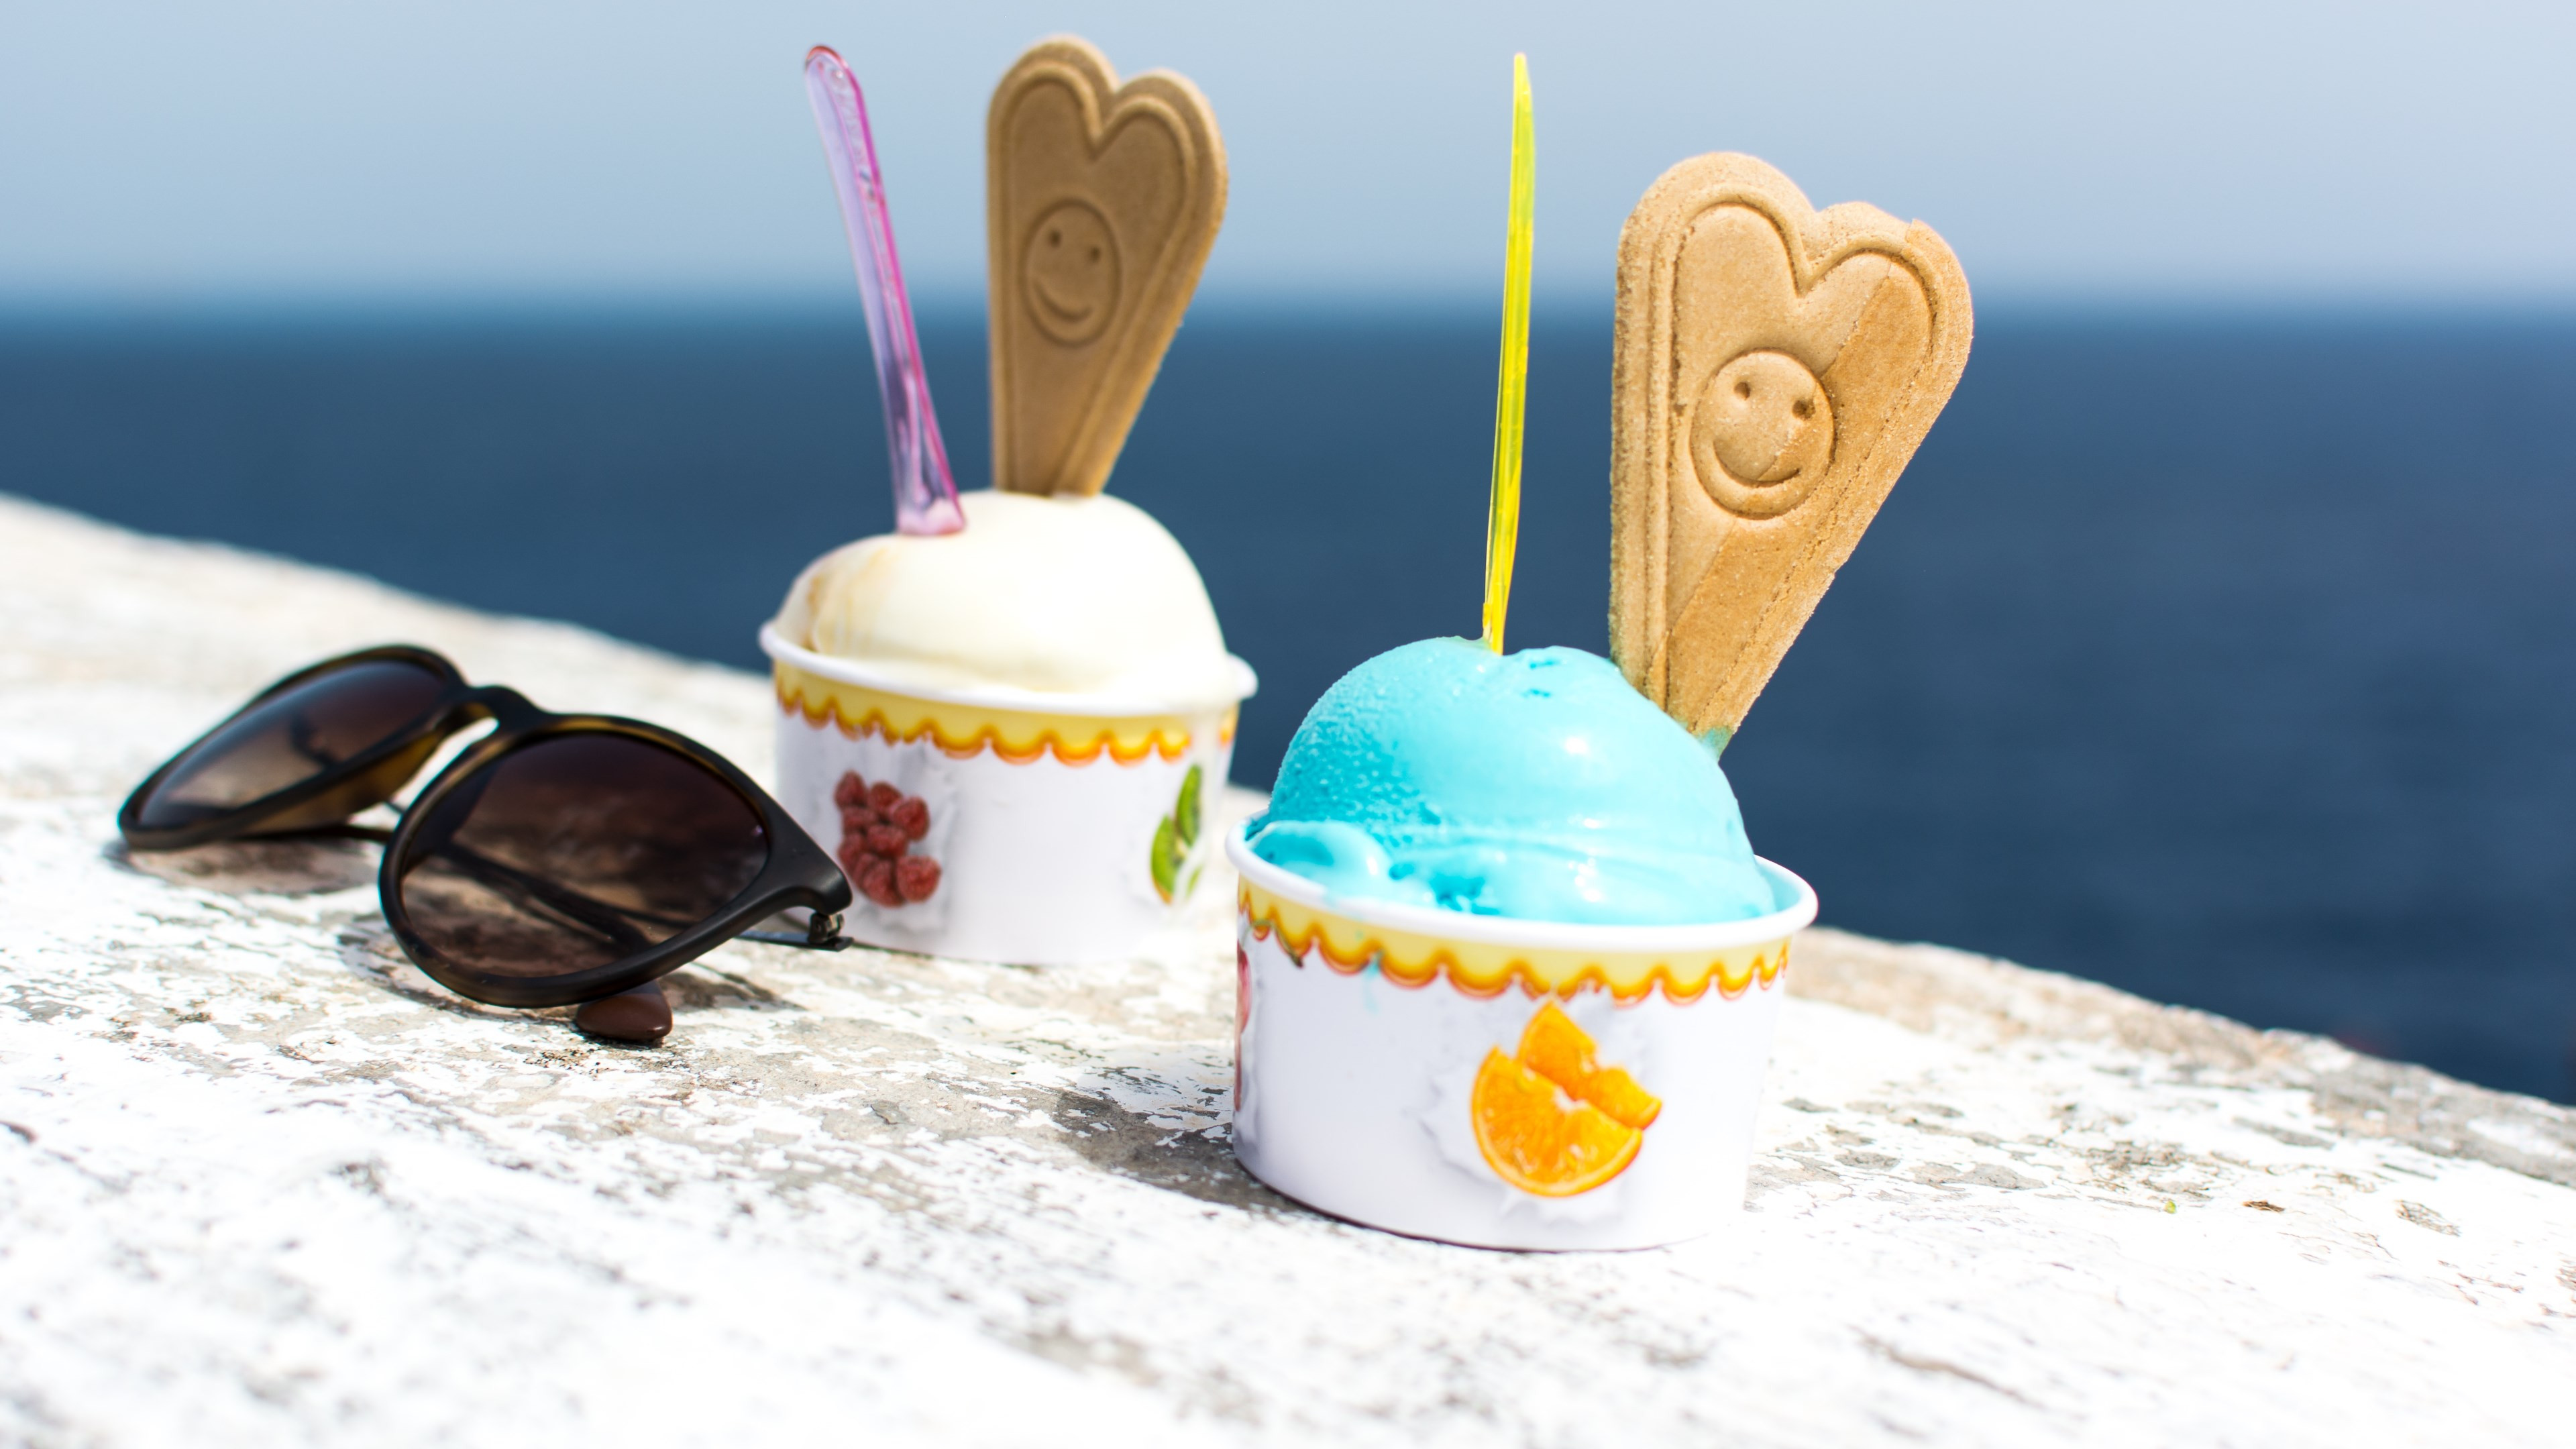 Ice cream wallpaper 3840x2160